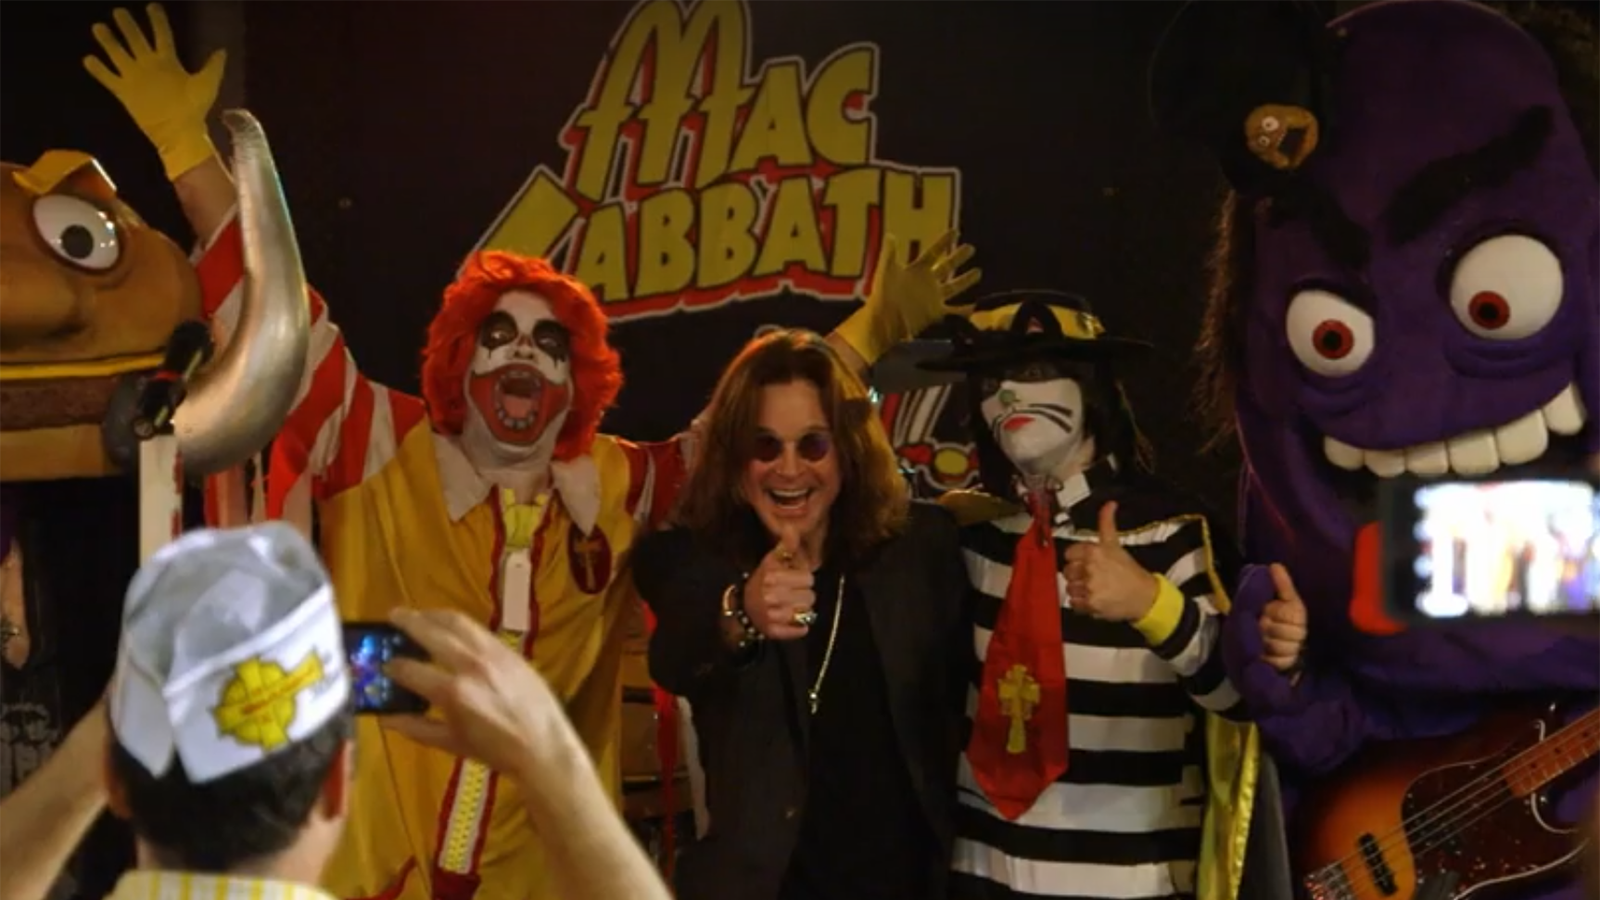 See Ozzy's Surprise Meeting With McDonald's-Themed Cover Band Mac Sabbath